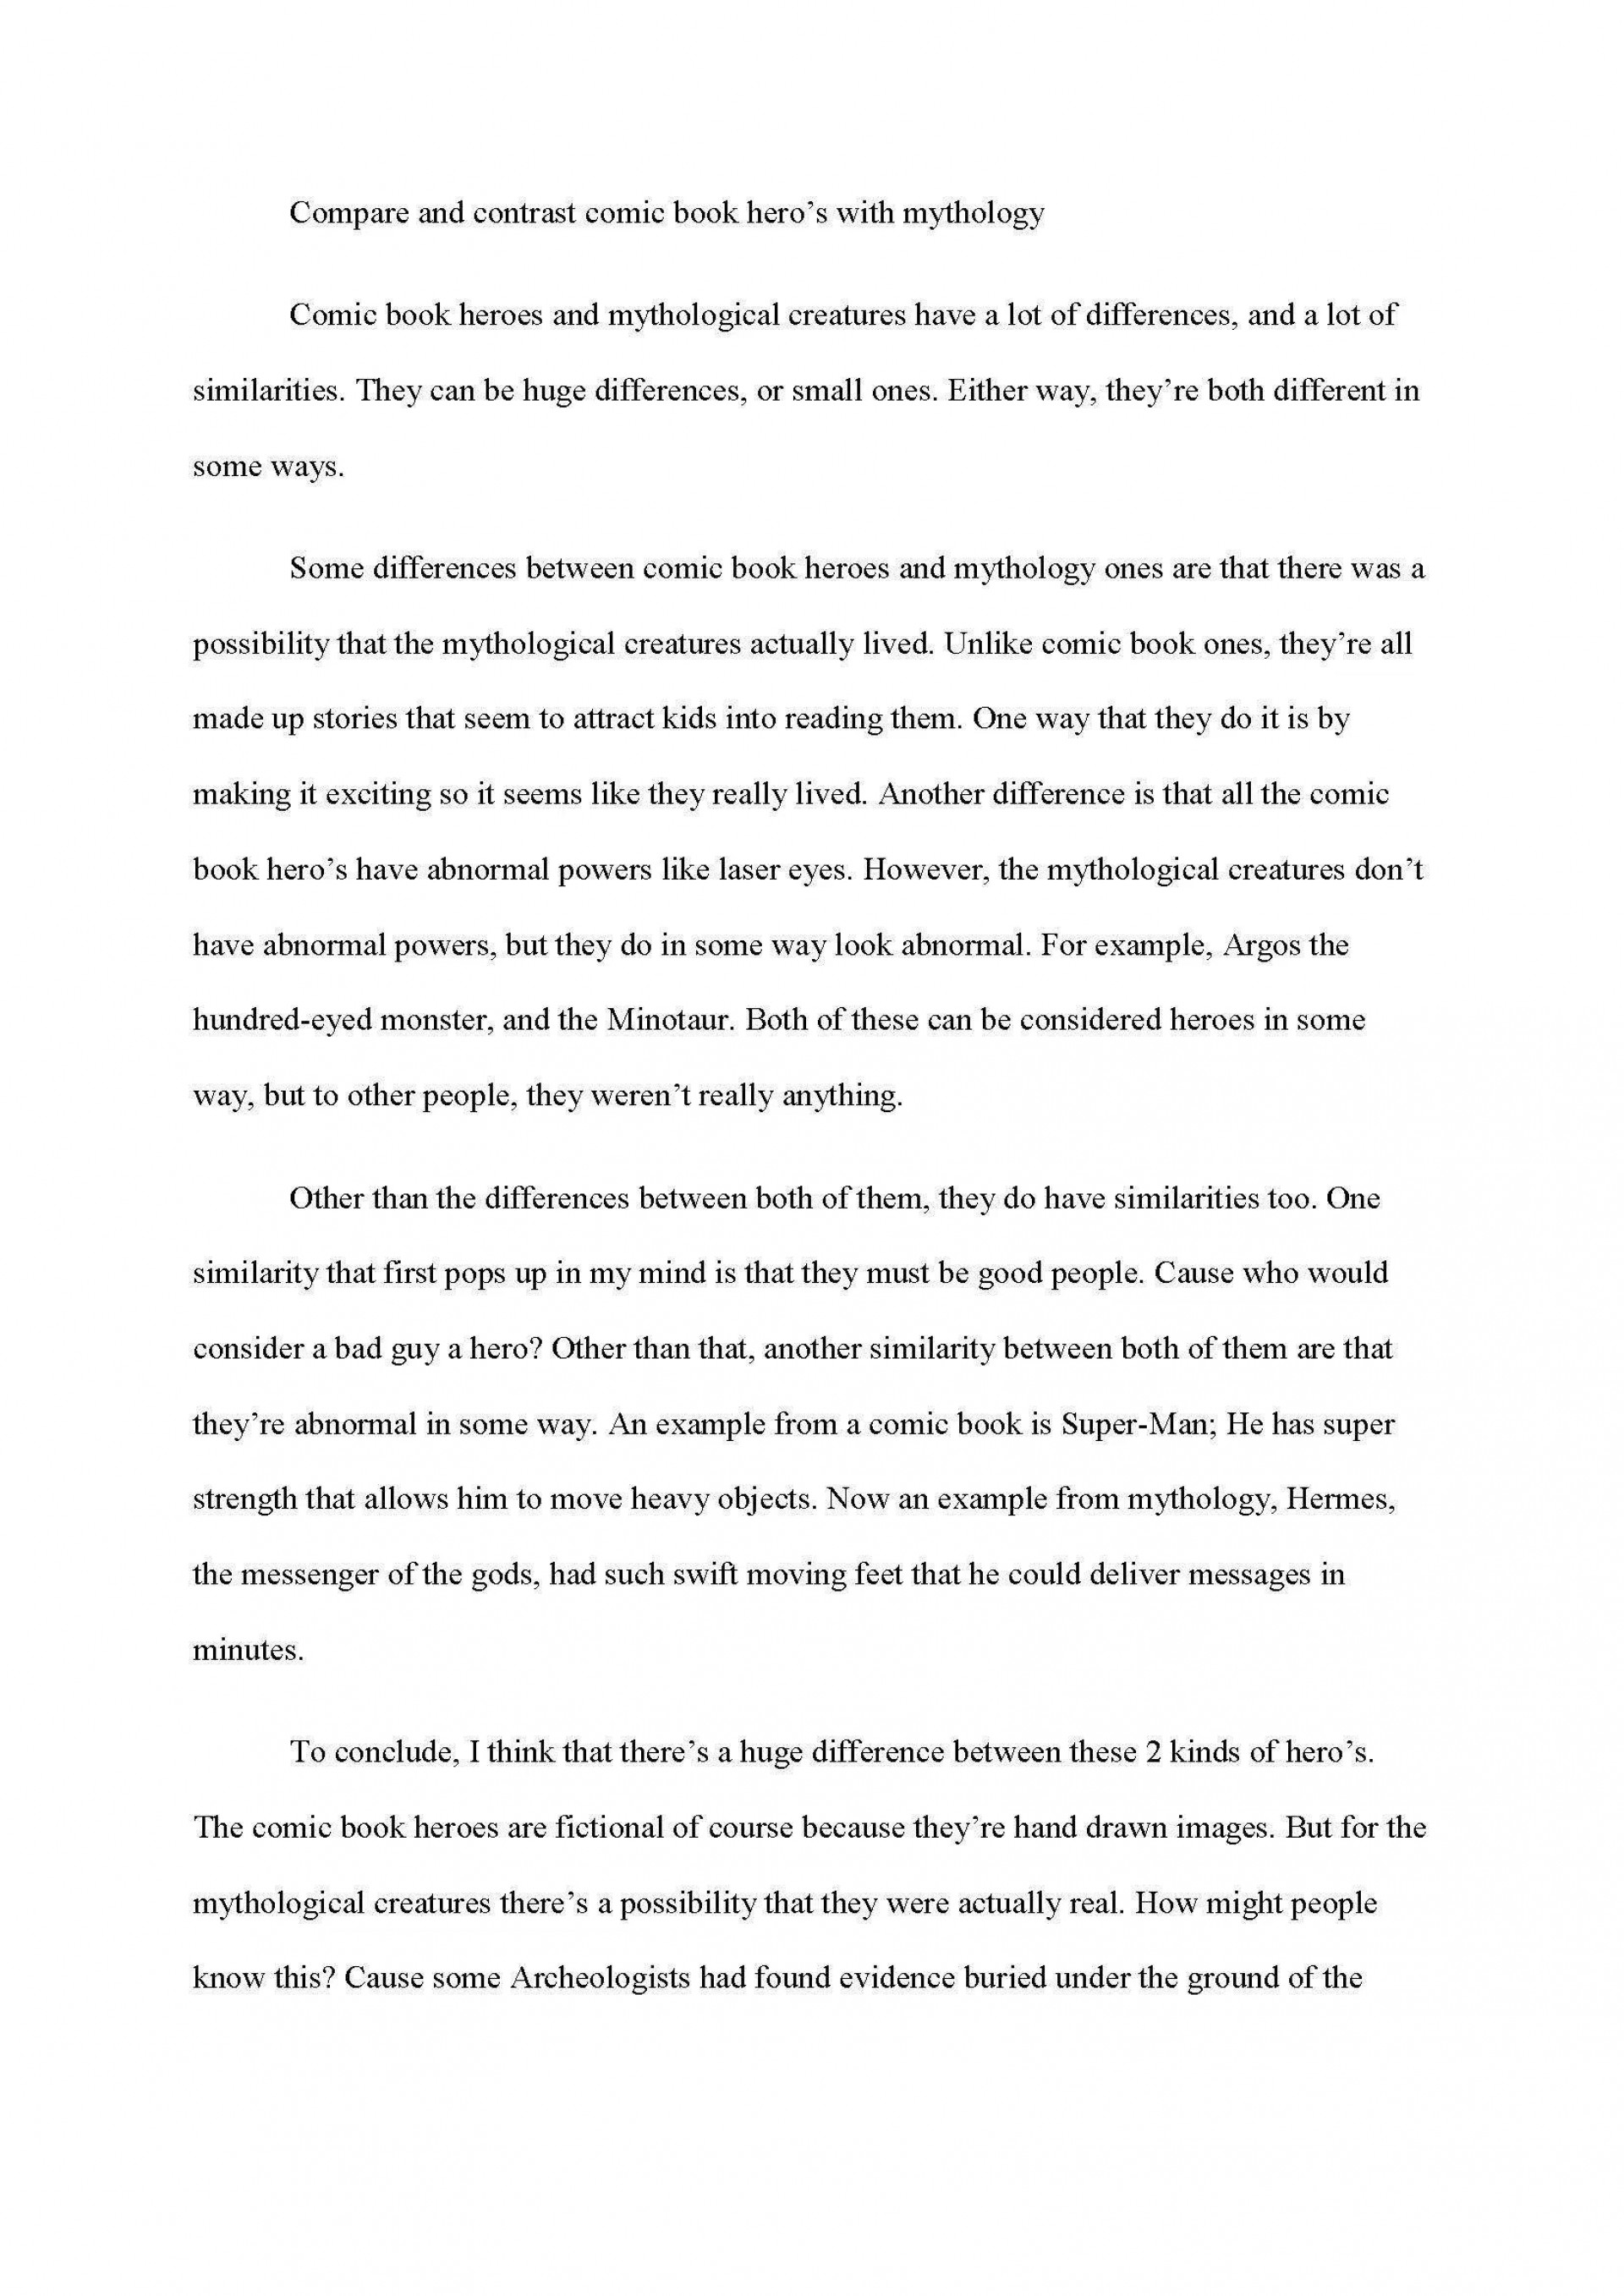 006 Excellent Compare And Contrast Essay Example College  For Topic Outline1920